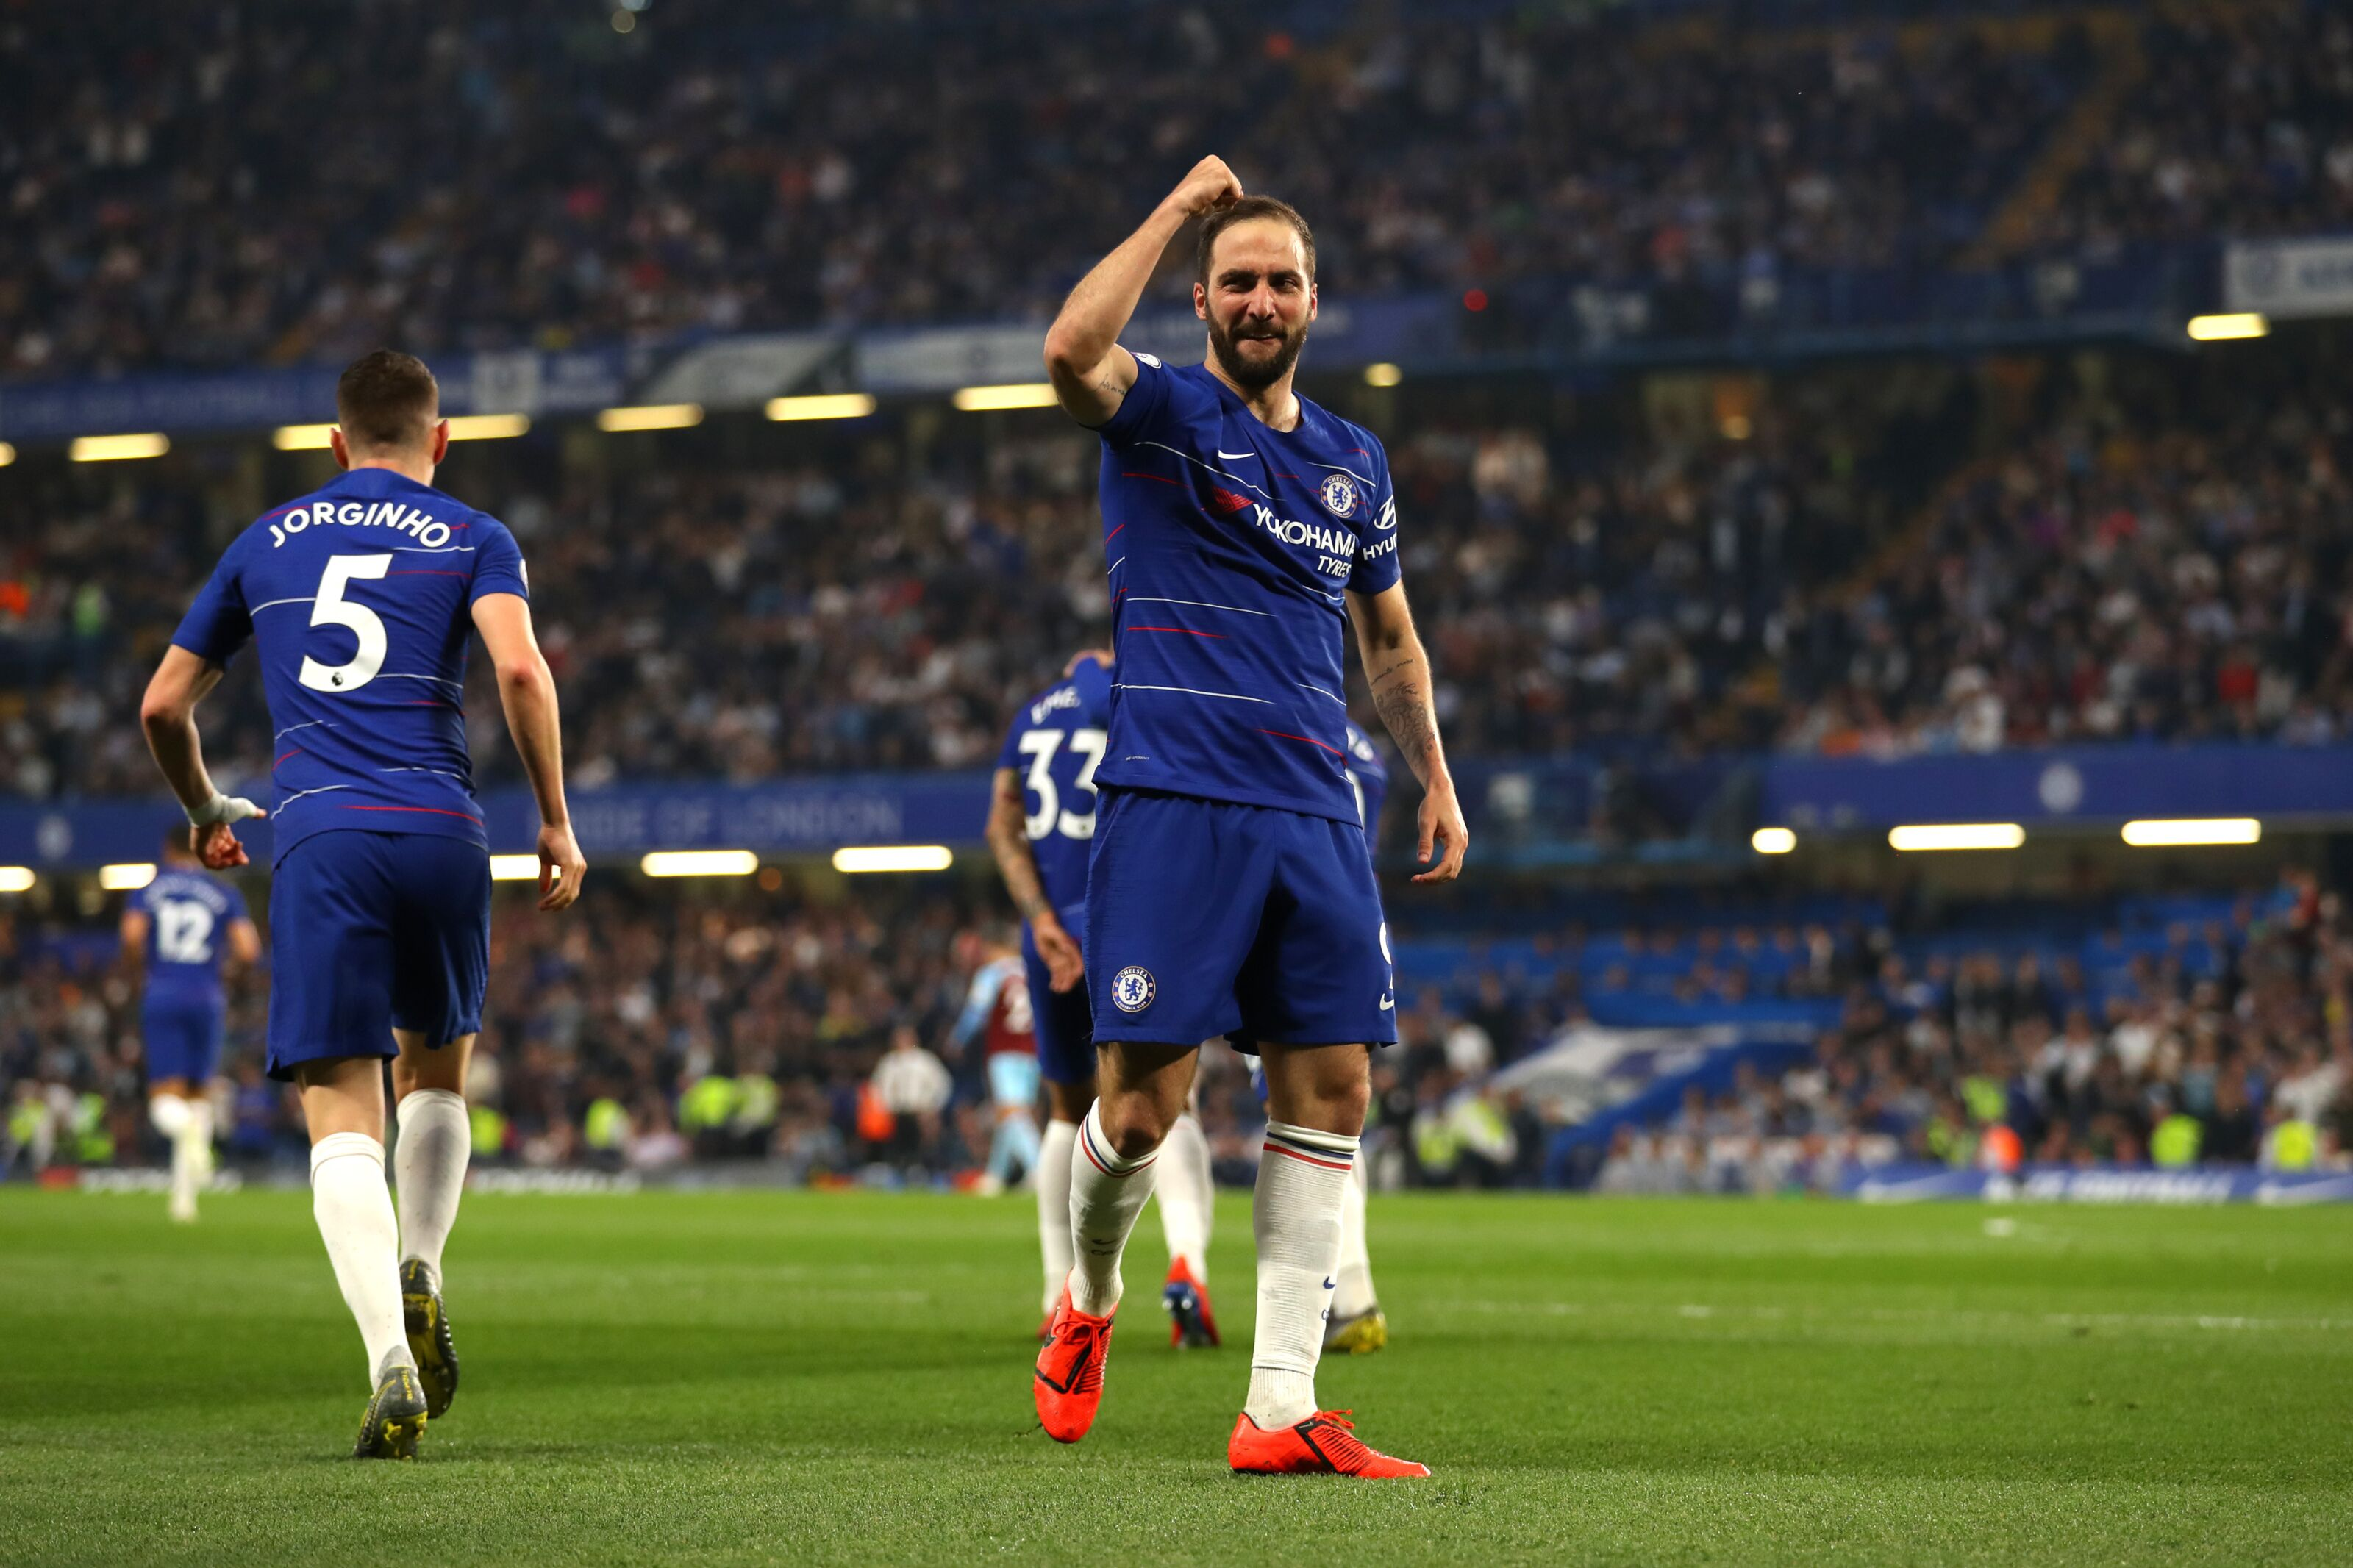 """Chelsea: Usual questions of the """"best XI"""" float around Maurizio Sarri's final XI"""